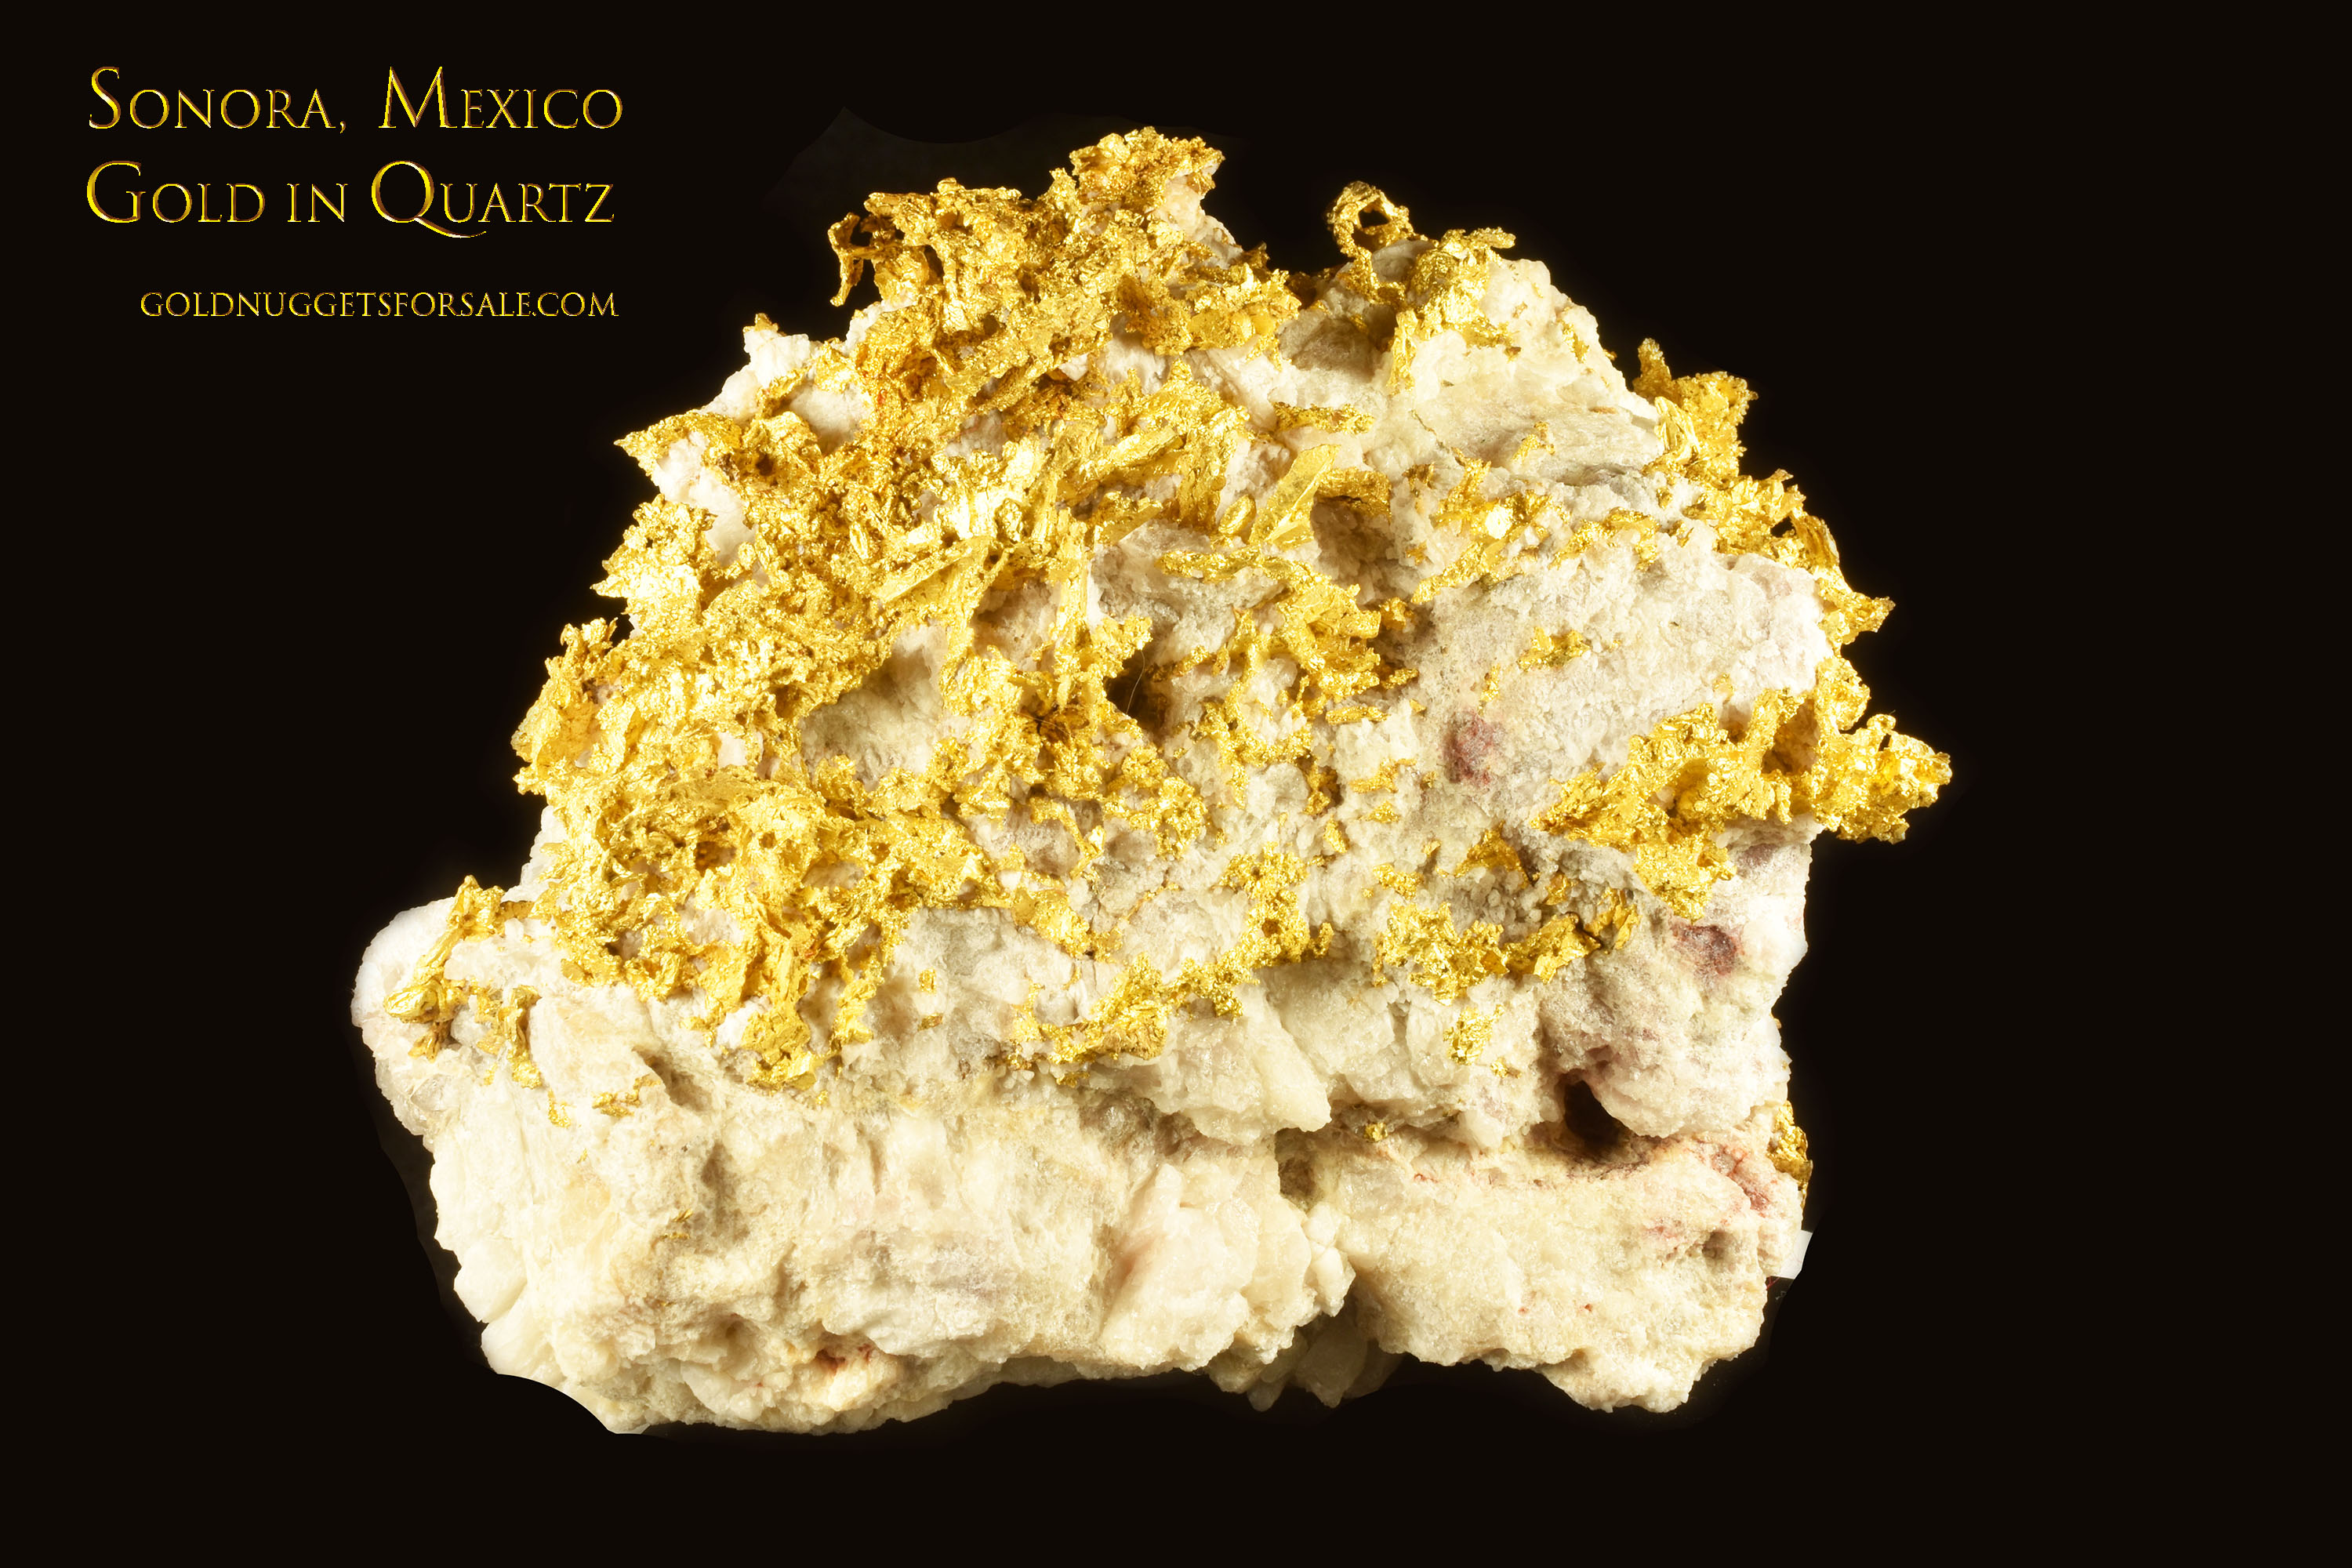 Rare and Marvelous 29.61 OZ Gold in Quartz Specimen from Mexico